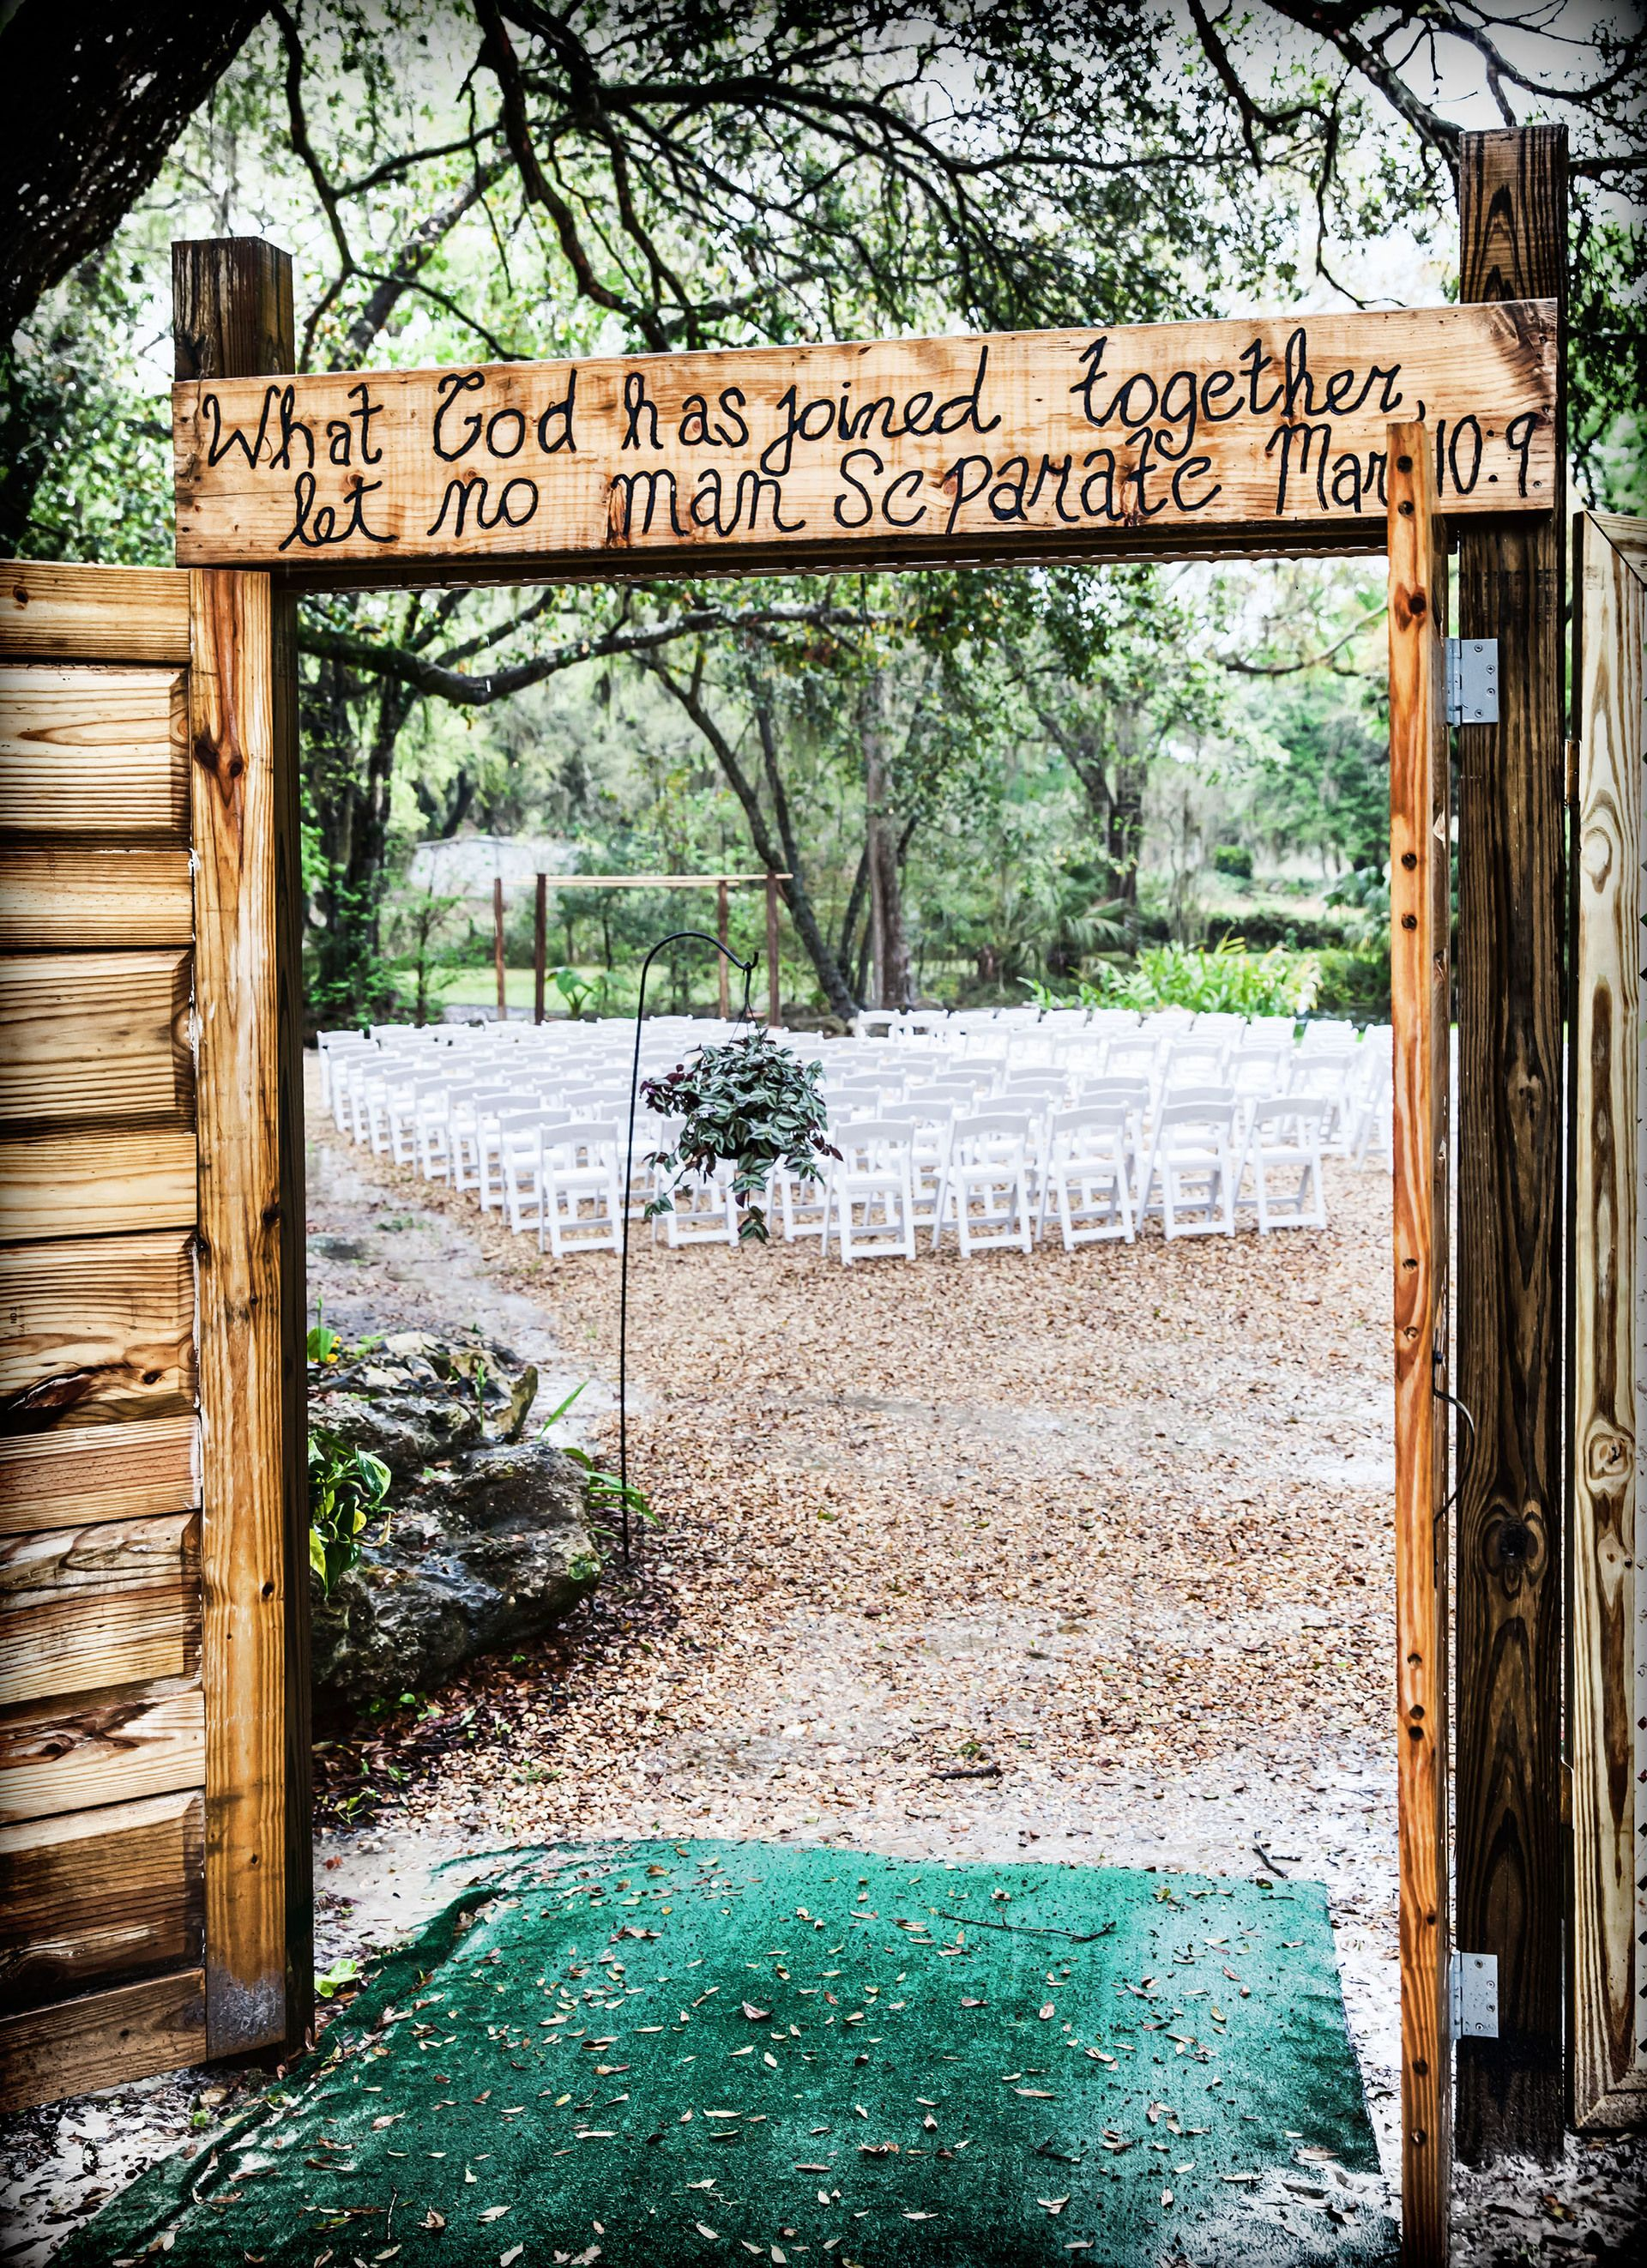 Wedding gate decoration ideas  Christian wedding bible quote ceremony entrance doors rustic